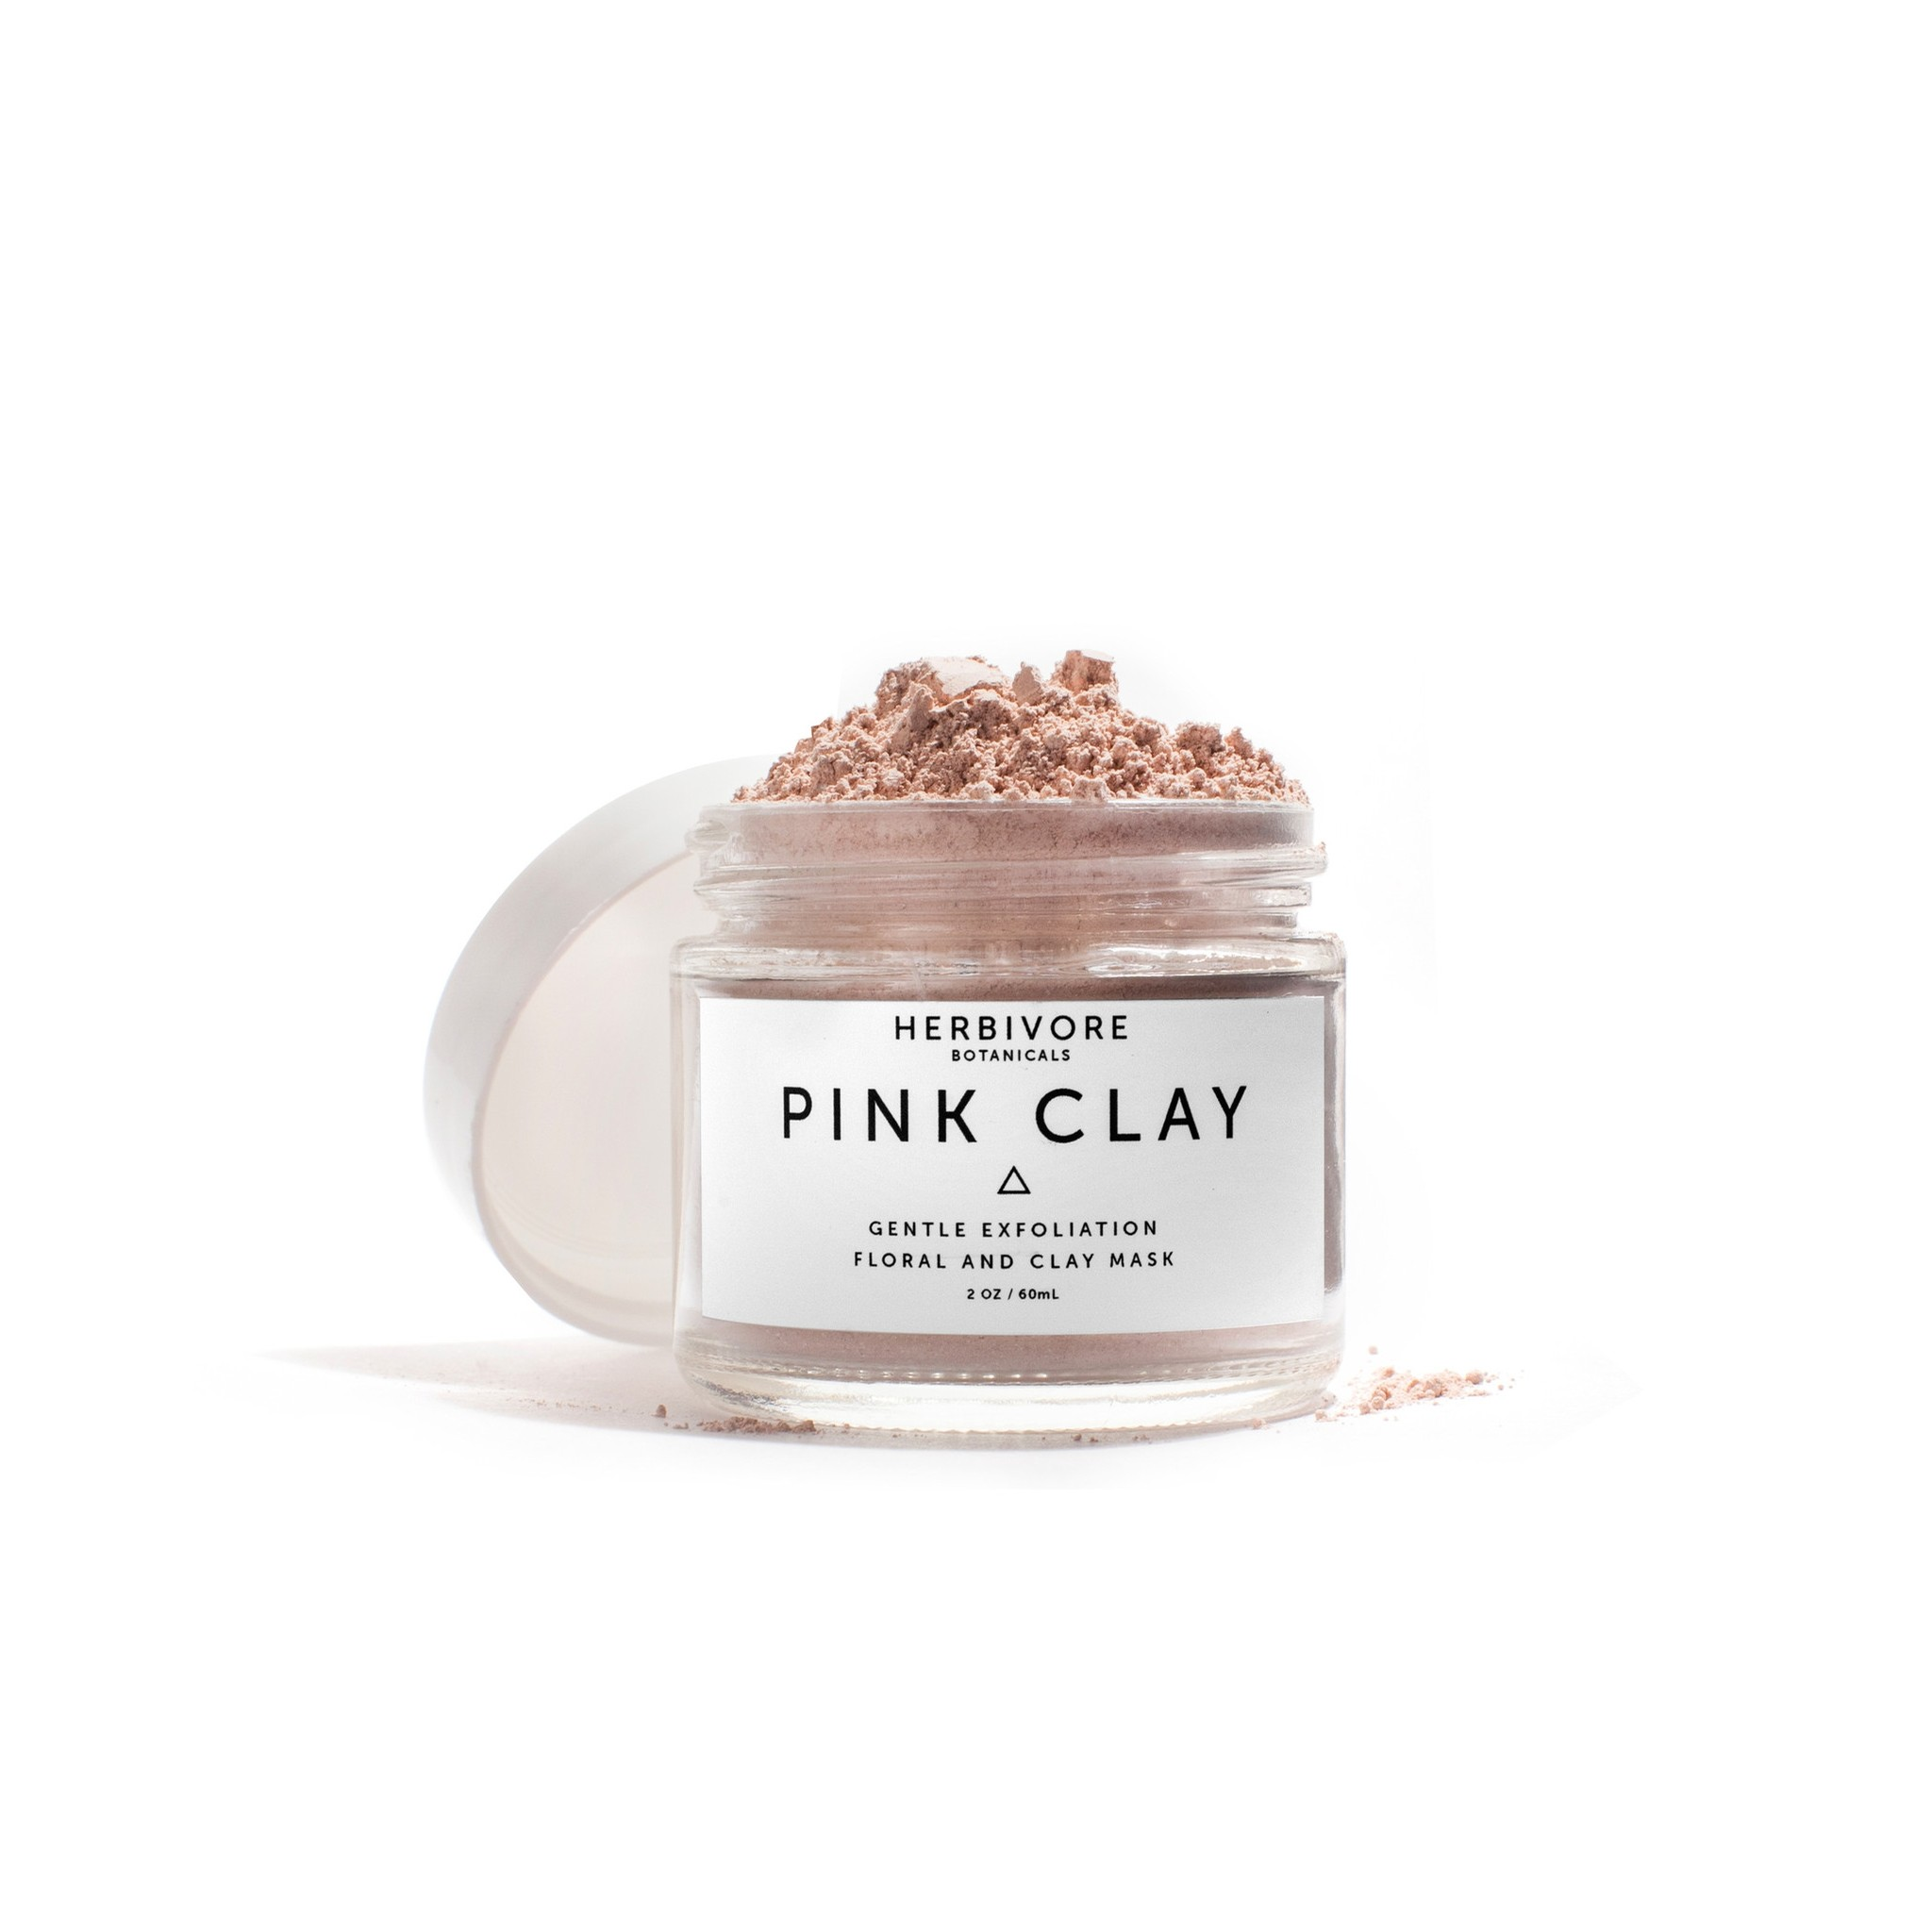 Pink Clay Exfoliating Dry Mask